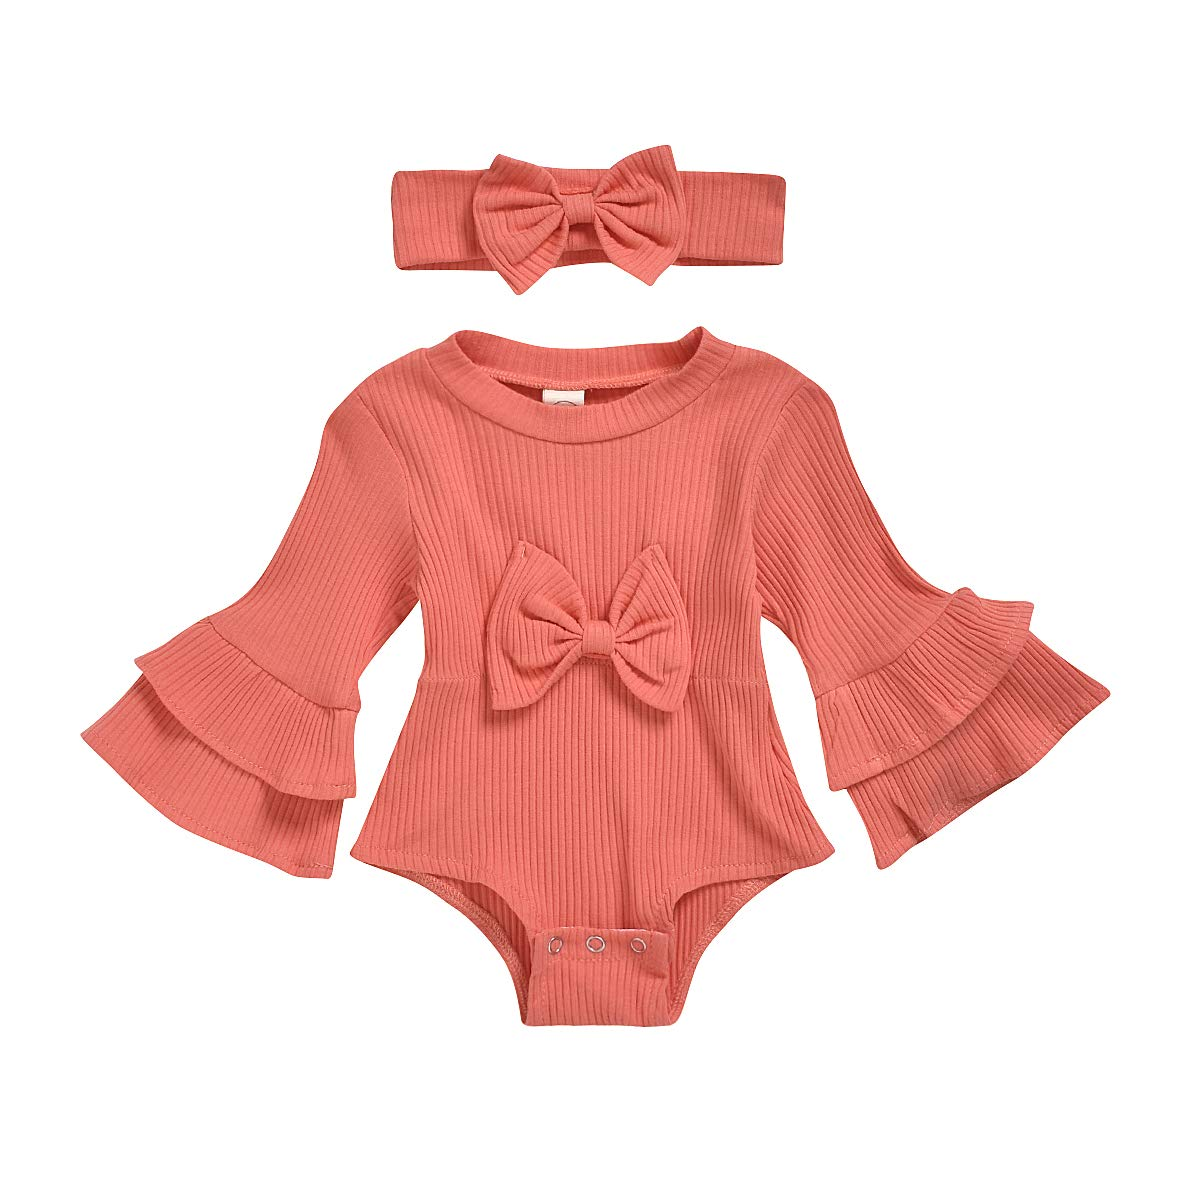 HZYKOK Toddler Baby Girl Clothes Onesie Romper Ruffle Long Sleeve One Piece Jumpsuit with Bow 0-24 Months